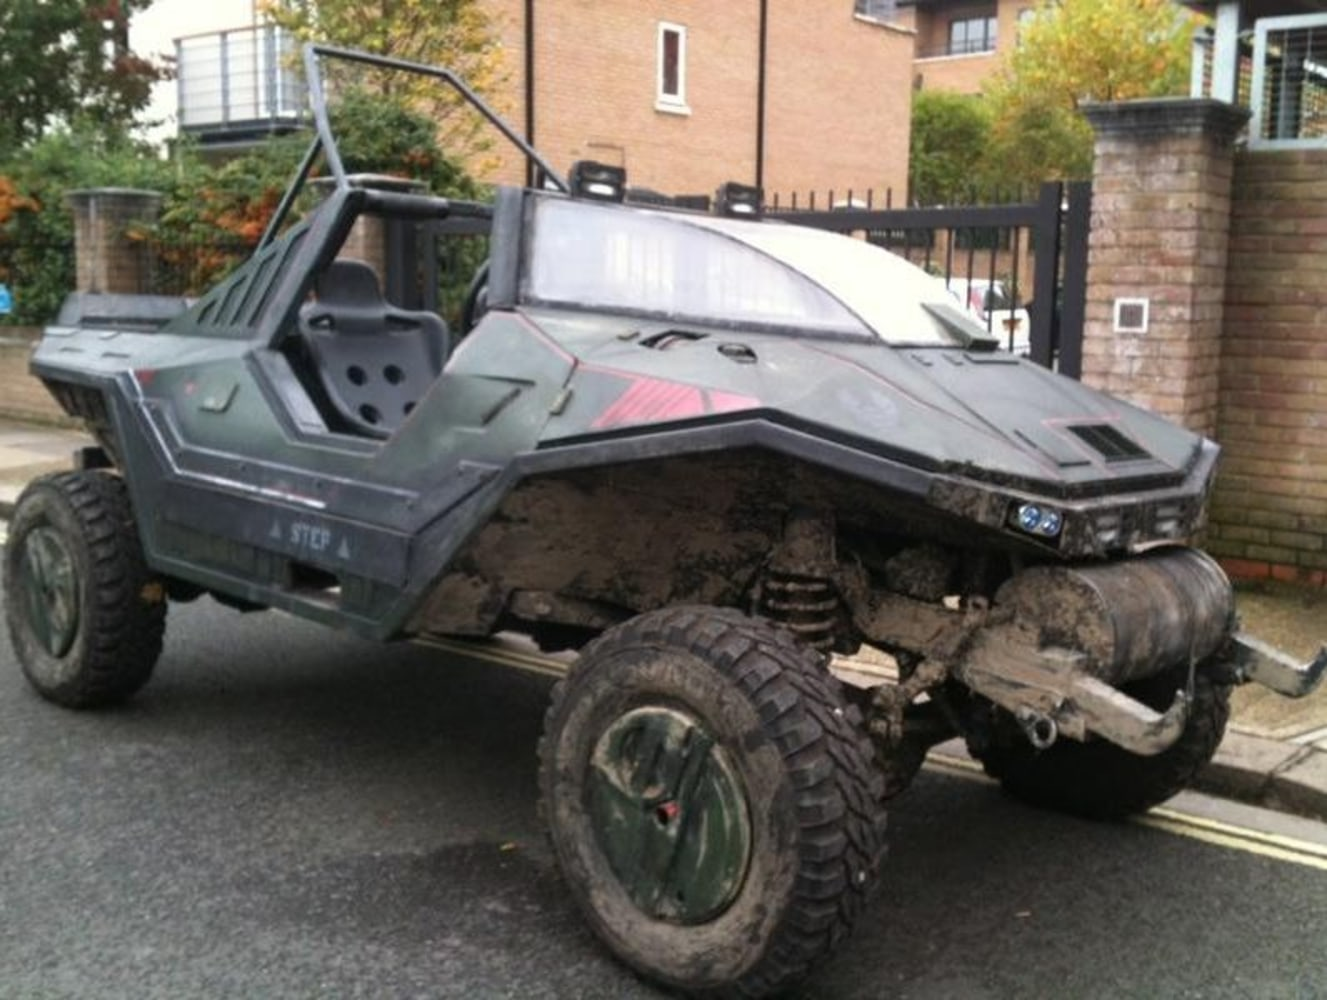 Real Life Halo Vehicles: How Much Would You Pay For A Real Halo Warthog?